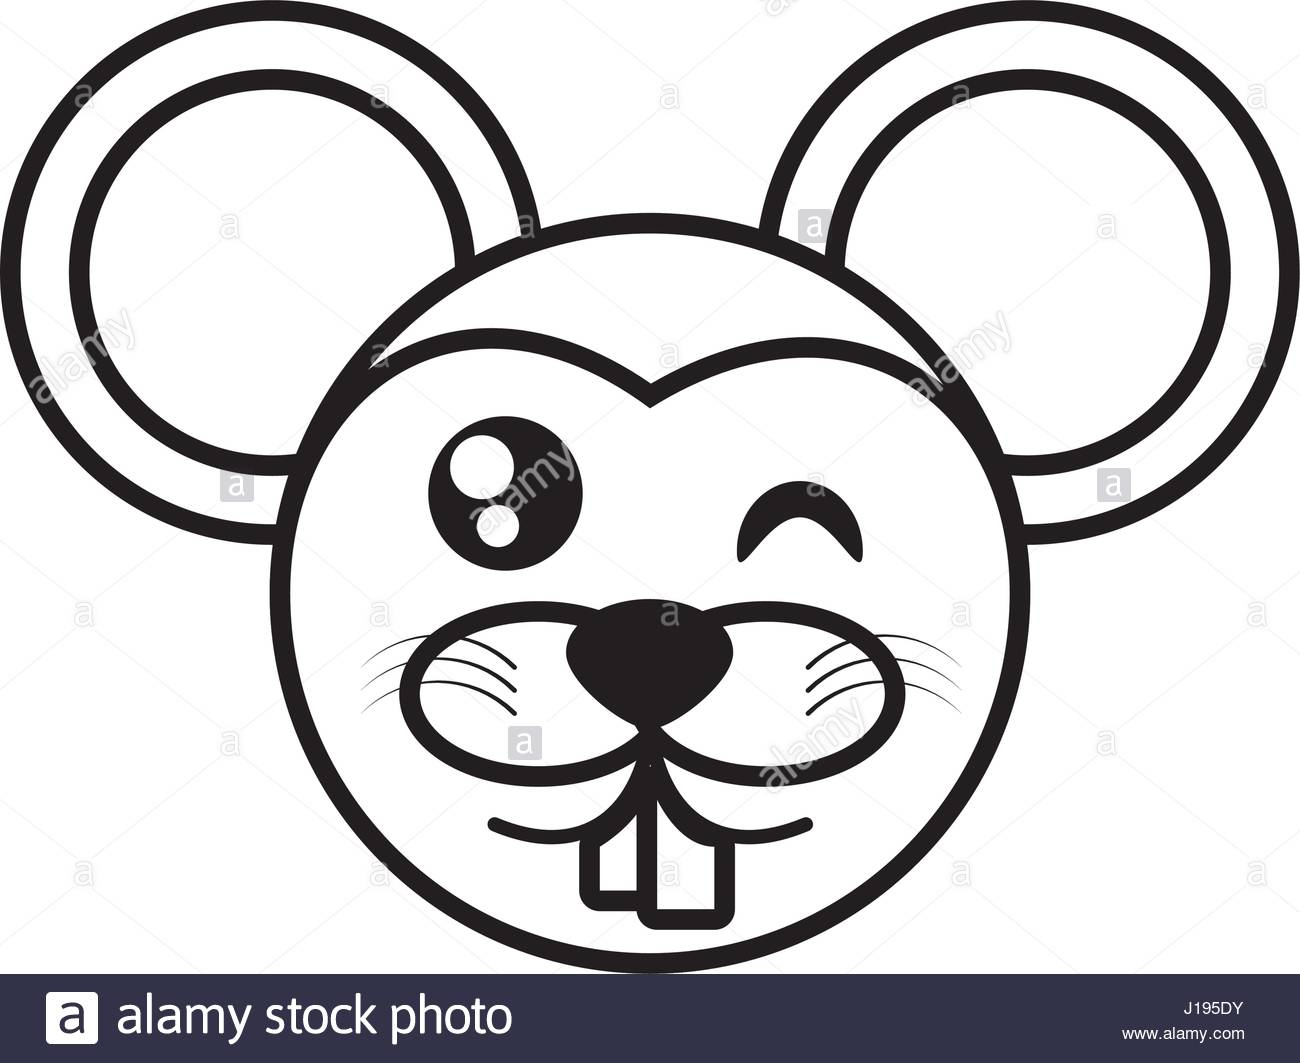 1300x1063 Mouse Face Animal Outline Stock Vector Art Amp Illustration, Vector